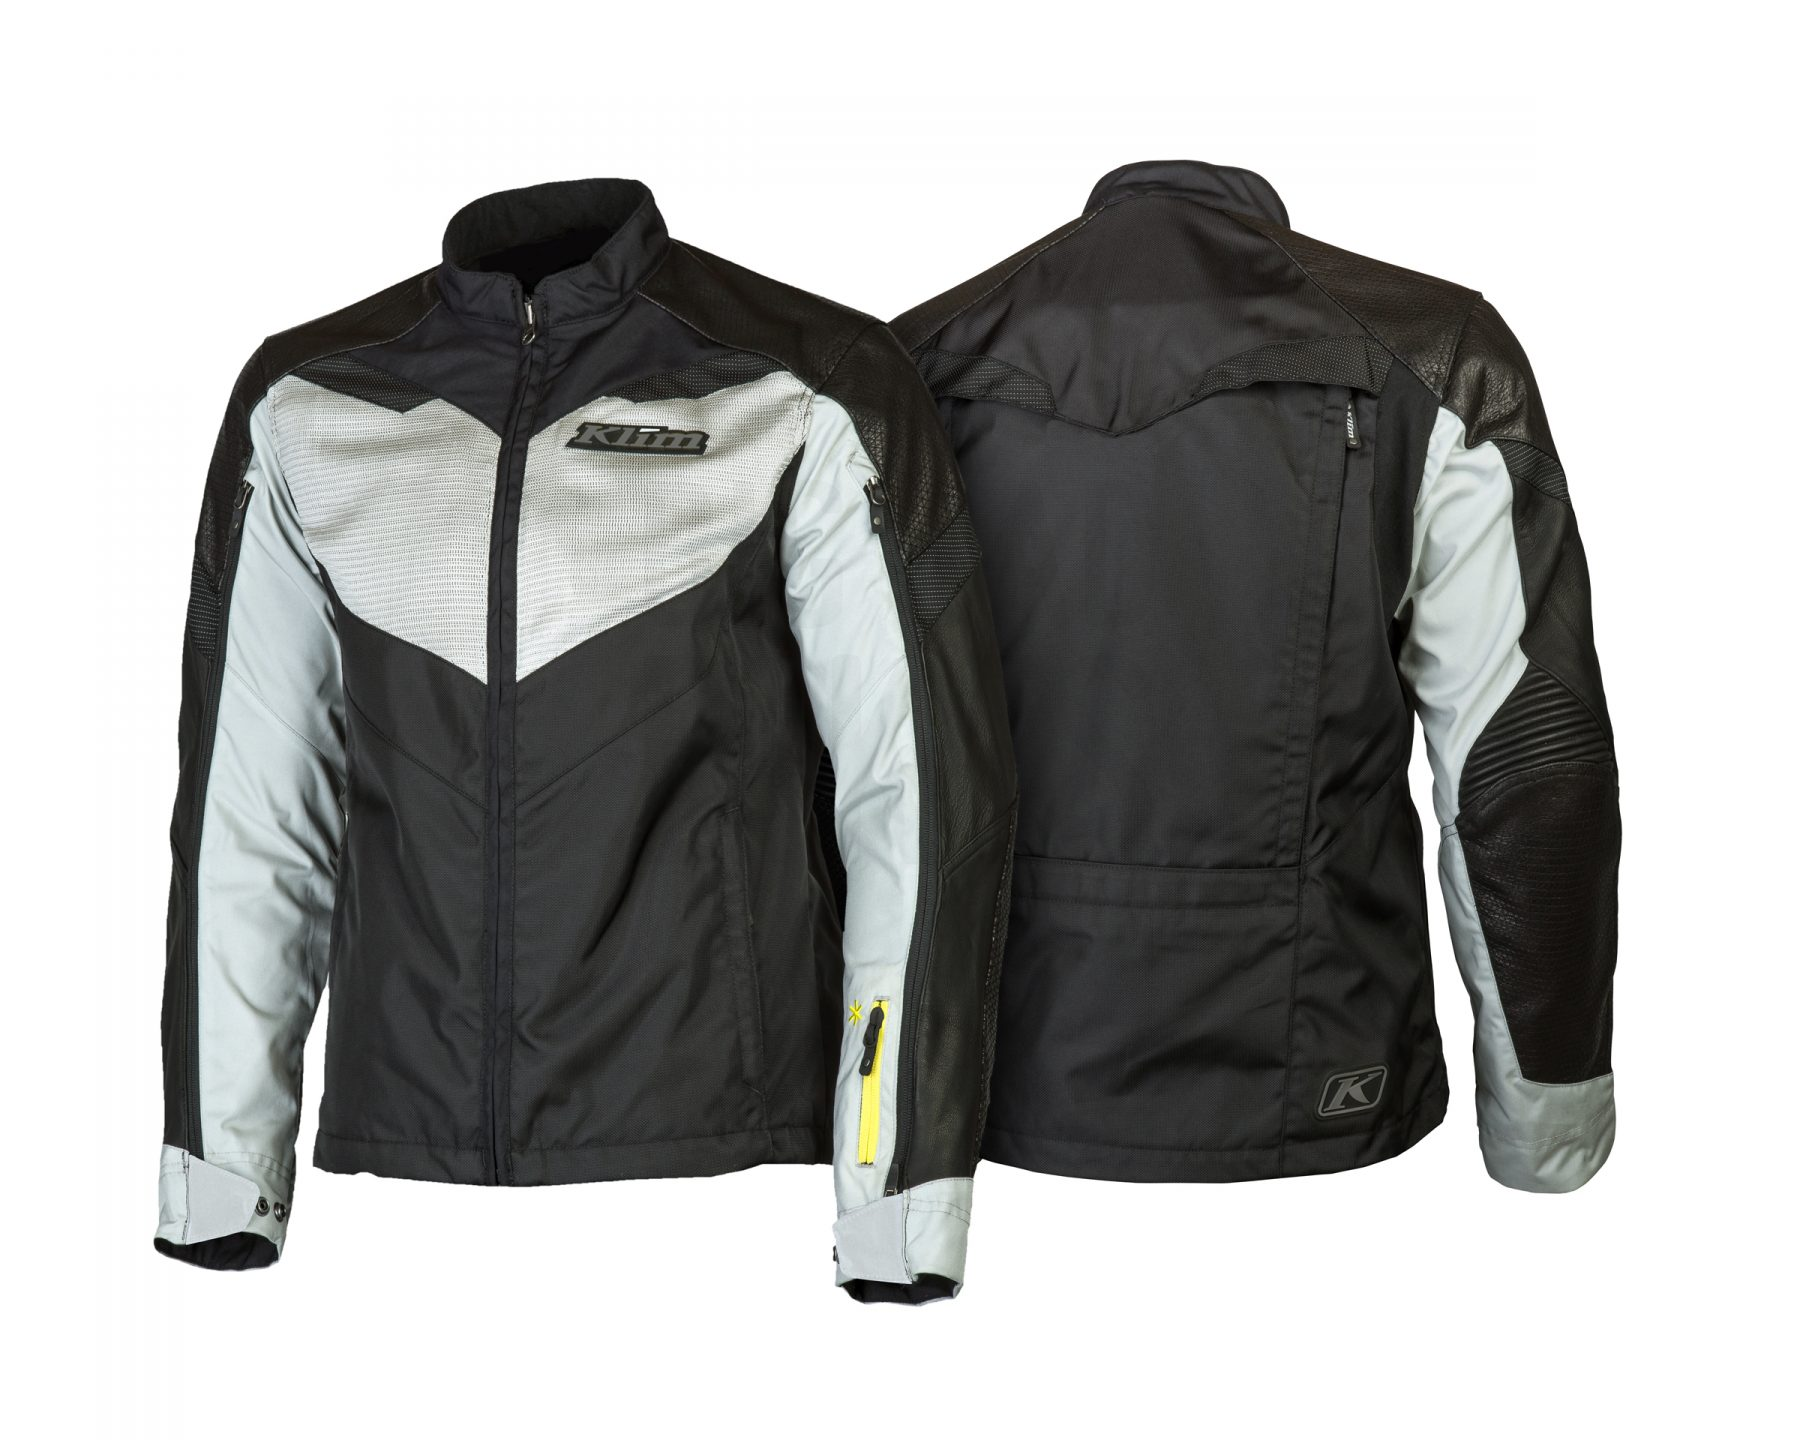 S Apex Air Jacket 5062-000-500_01